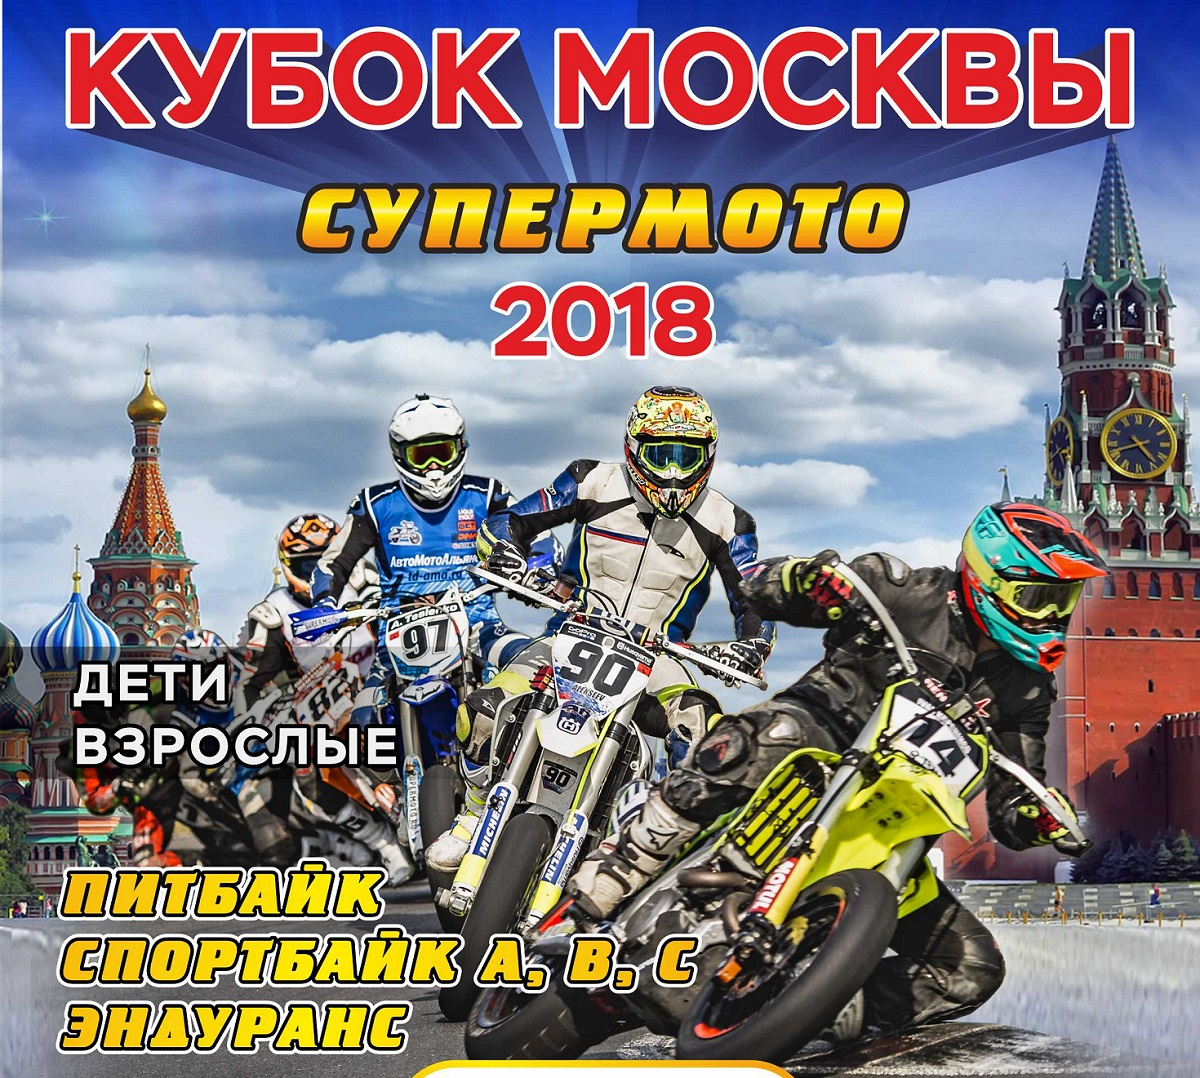 moscow-cup-2018.jpg